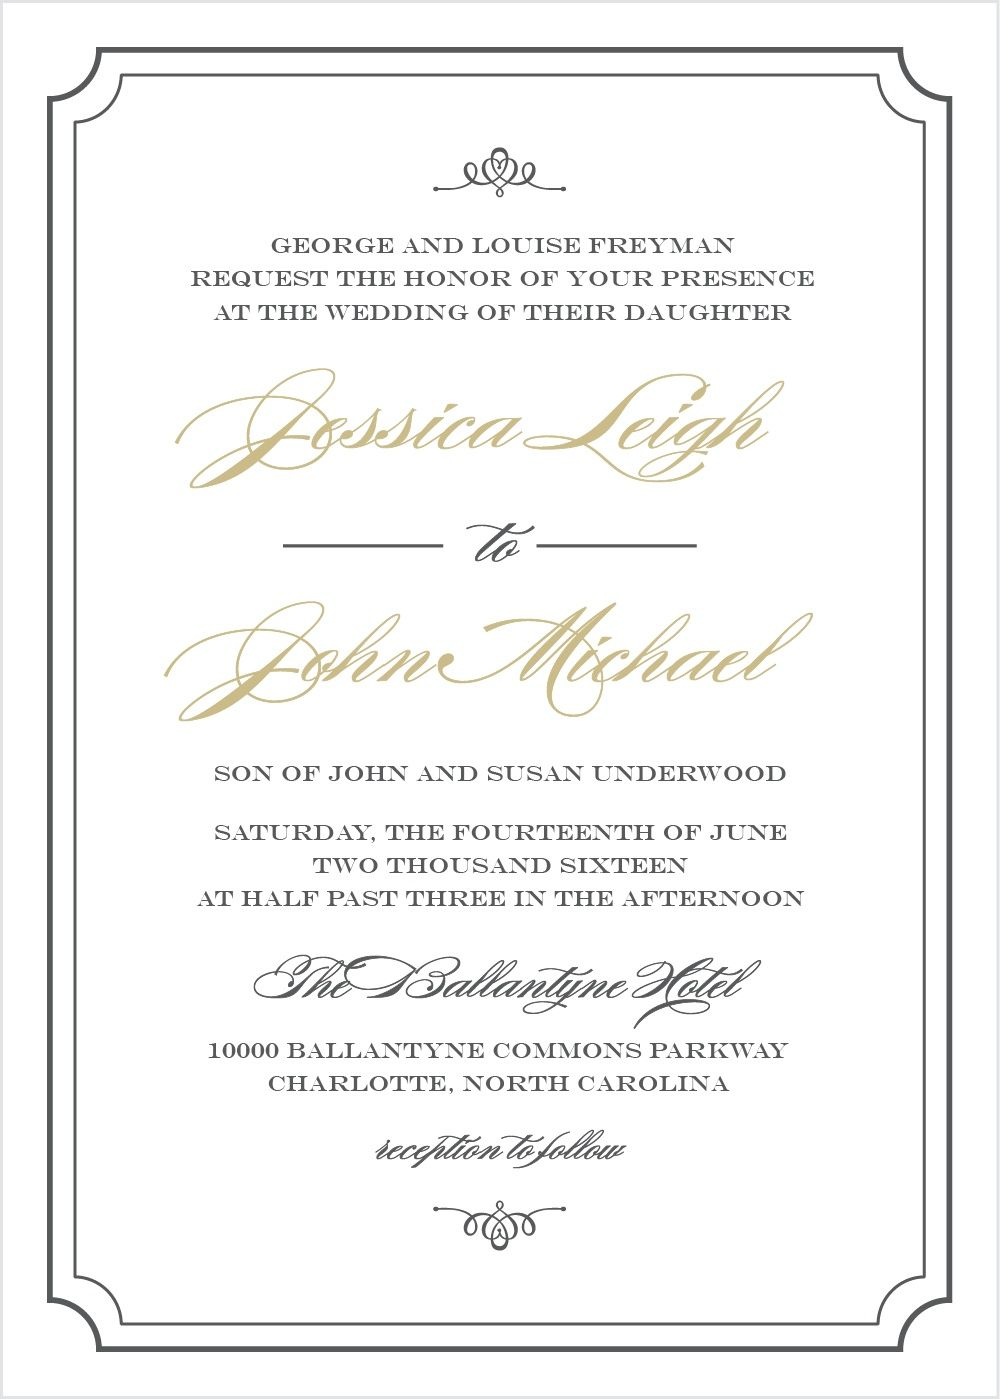 Elegant Script Wedding Invitations Traditional Wedding Invitation Wording Wedding Invitation Wording Formal Catholic Wedding Invitations